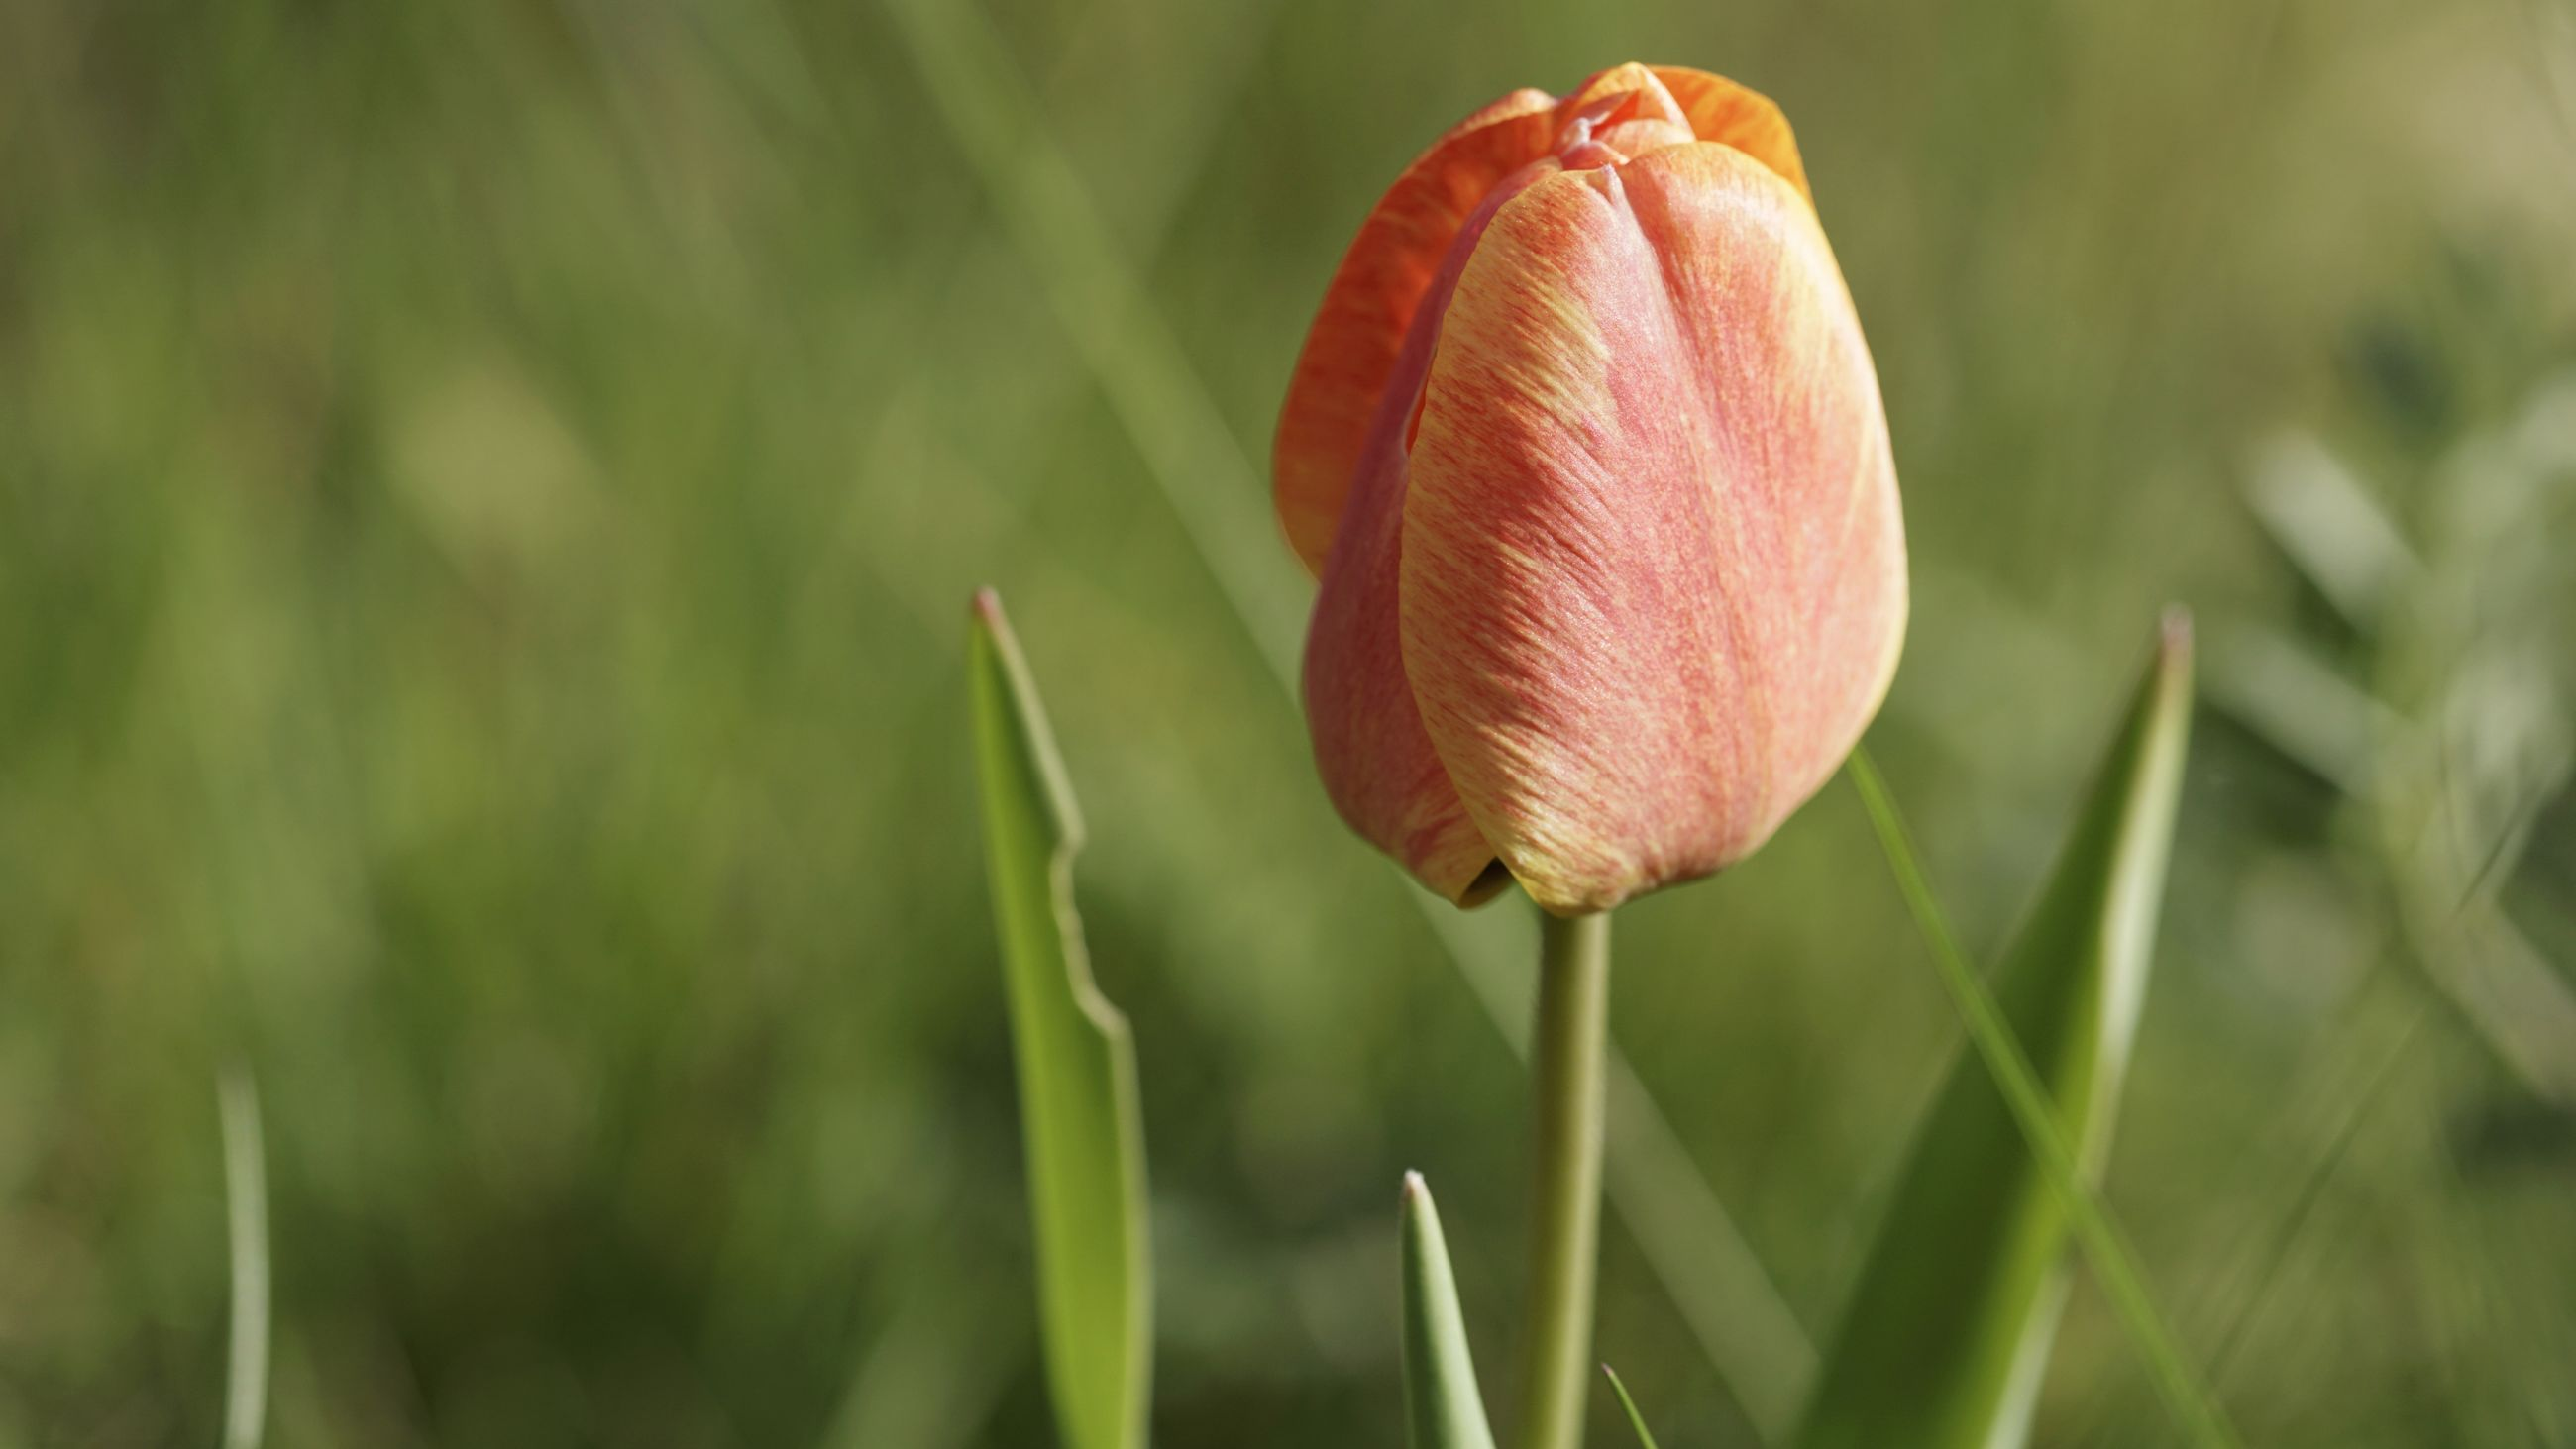 CLOSE-UP OF TULIP FLOWER